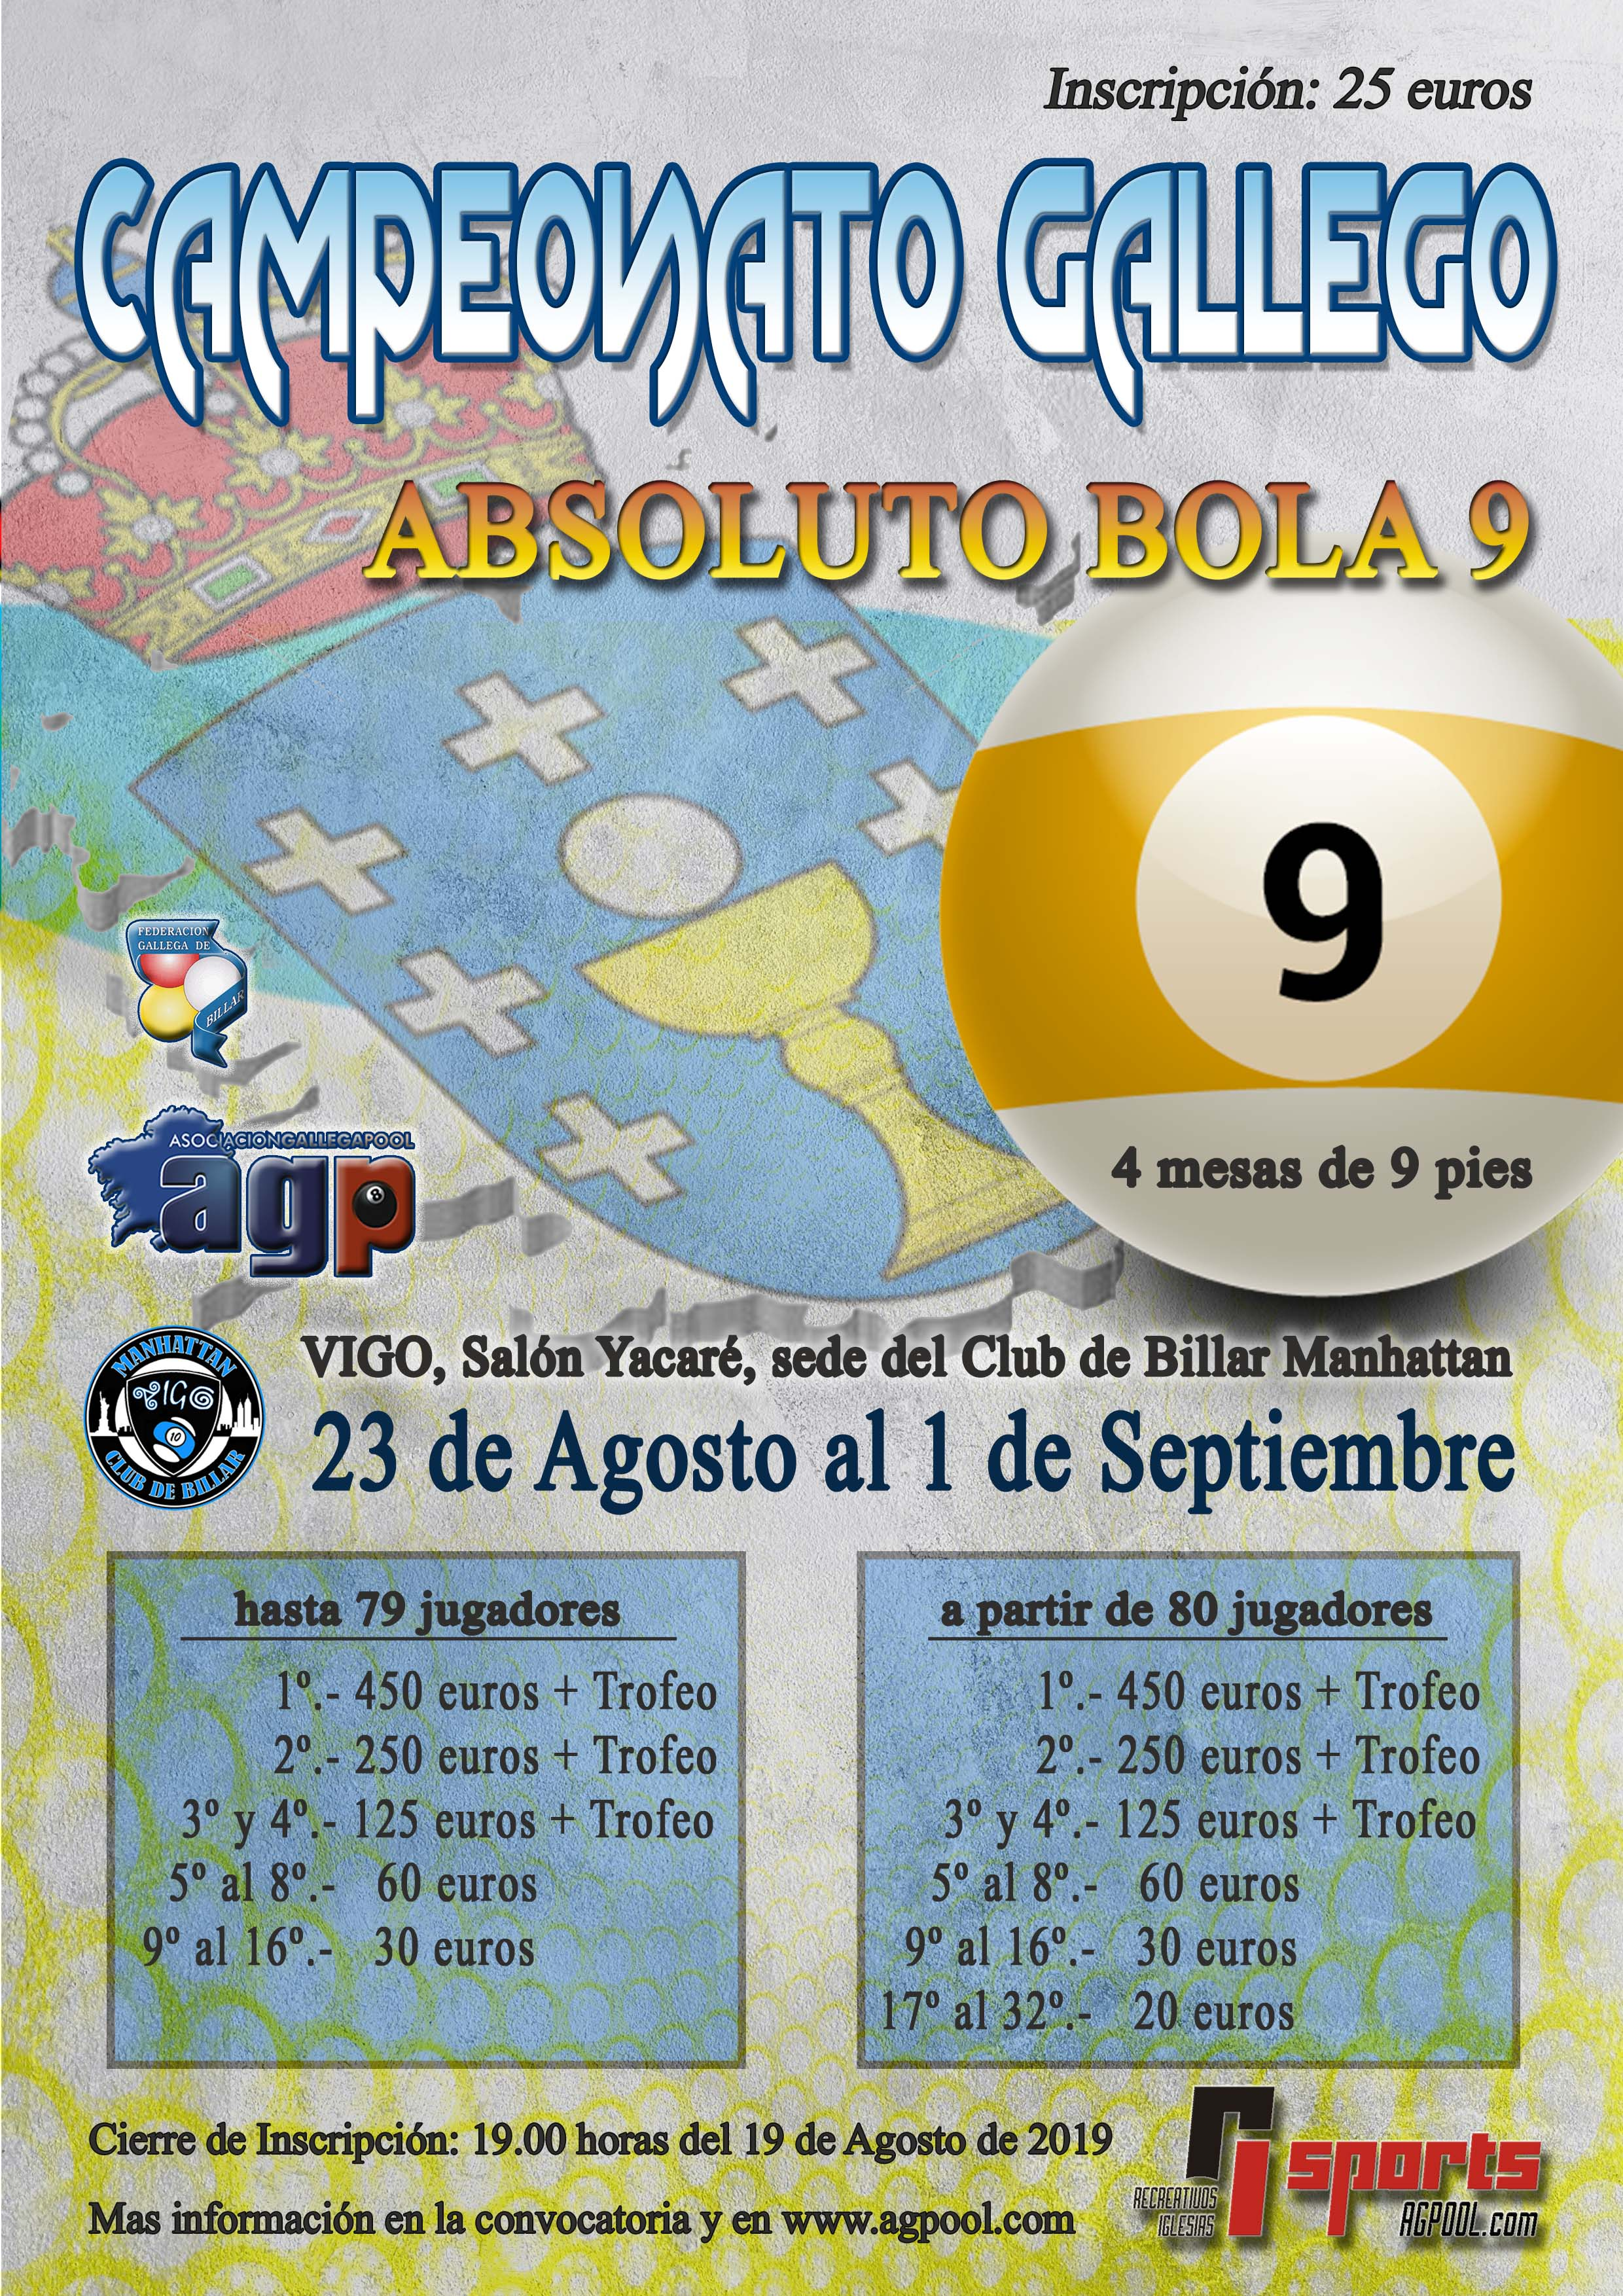 CAMPEONATO GALLEGO ABSOLUTO BOLA-9